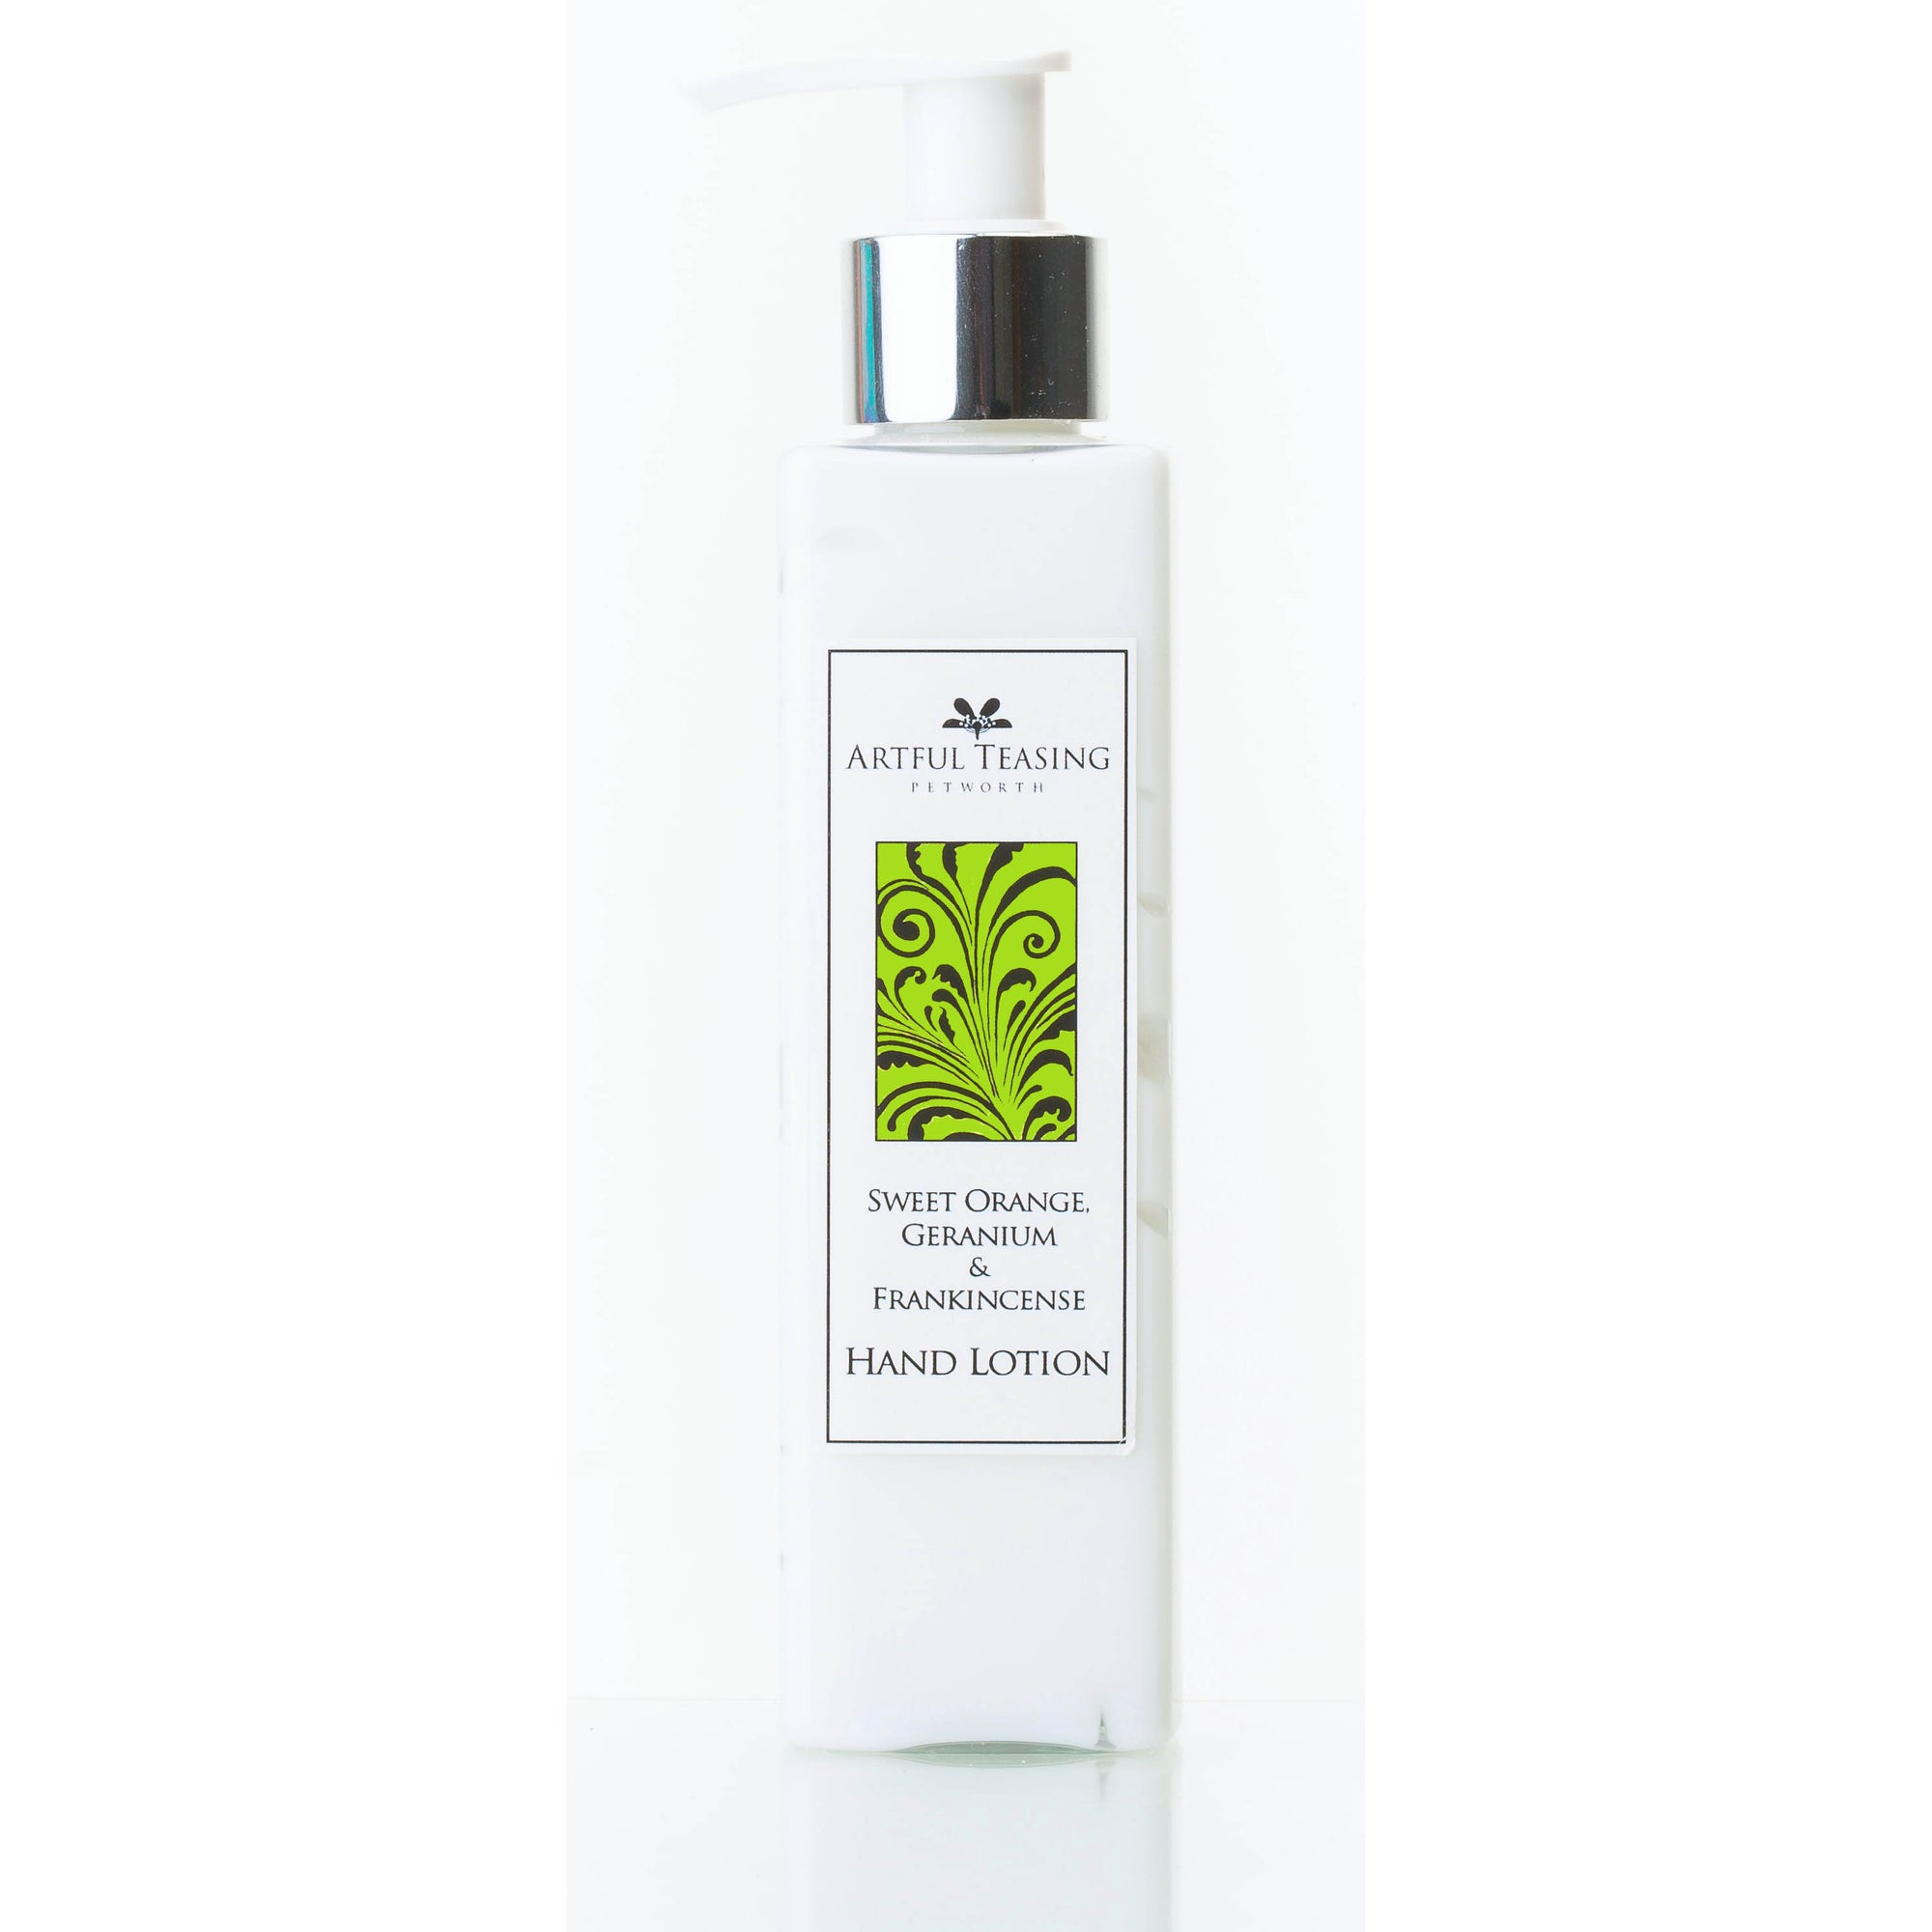 Sweet Orange, Geranium & Frankincense Hand Lotion 200ml